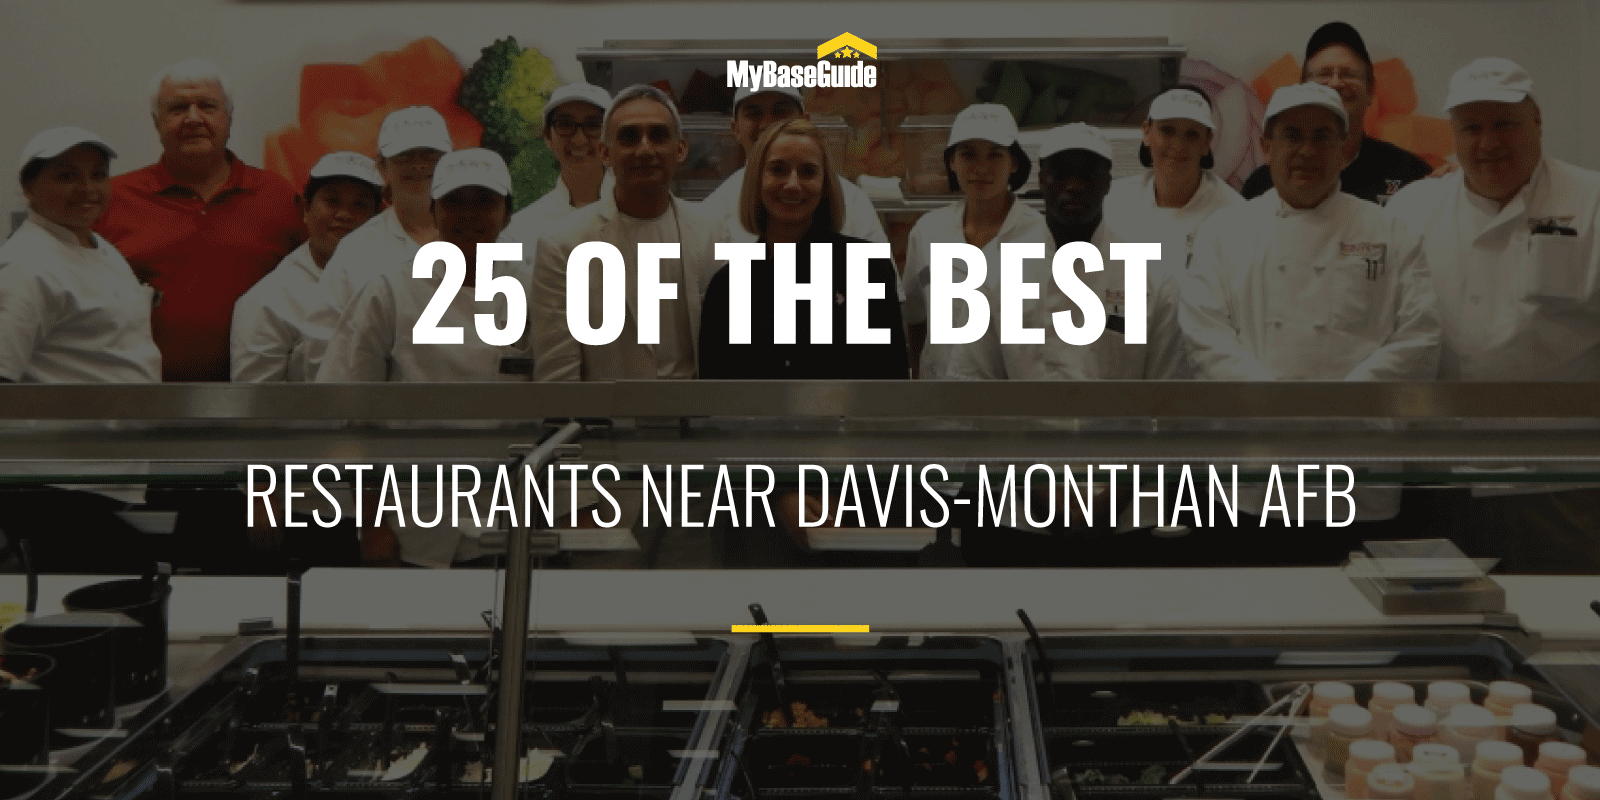 25 of the Best Restaurants Near Davis-Monthan AFB